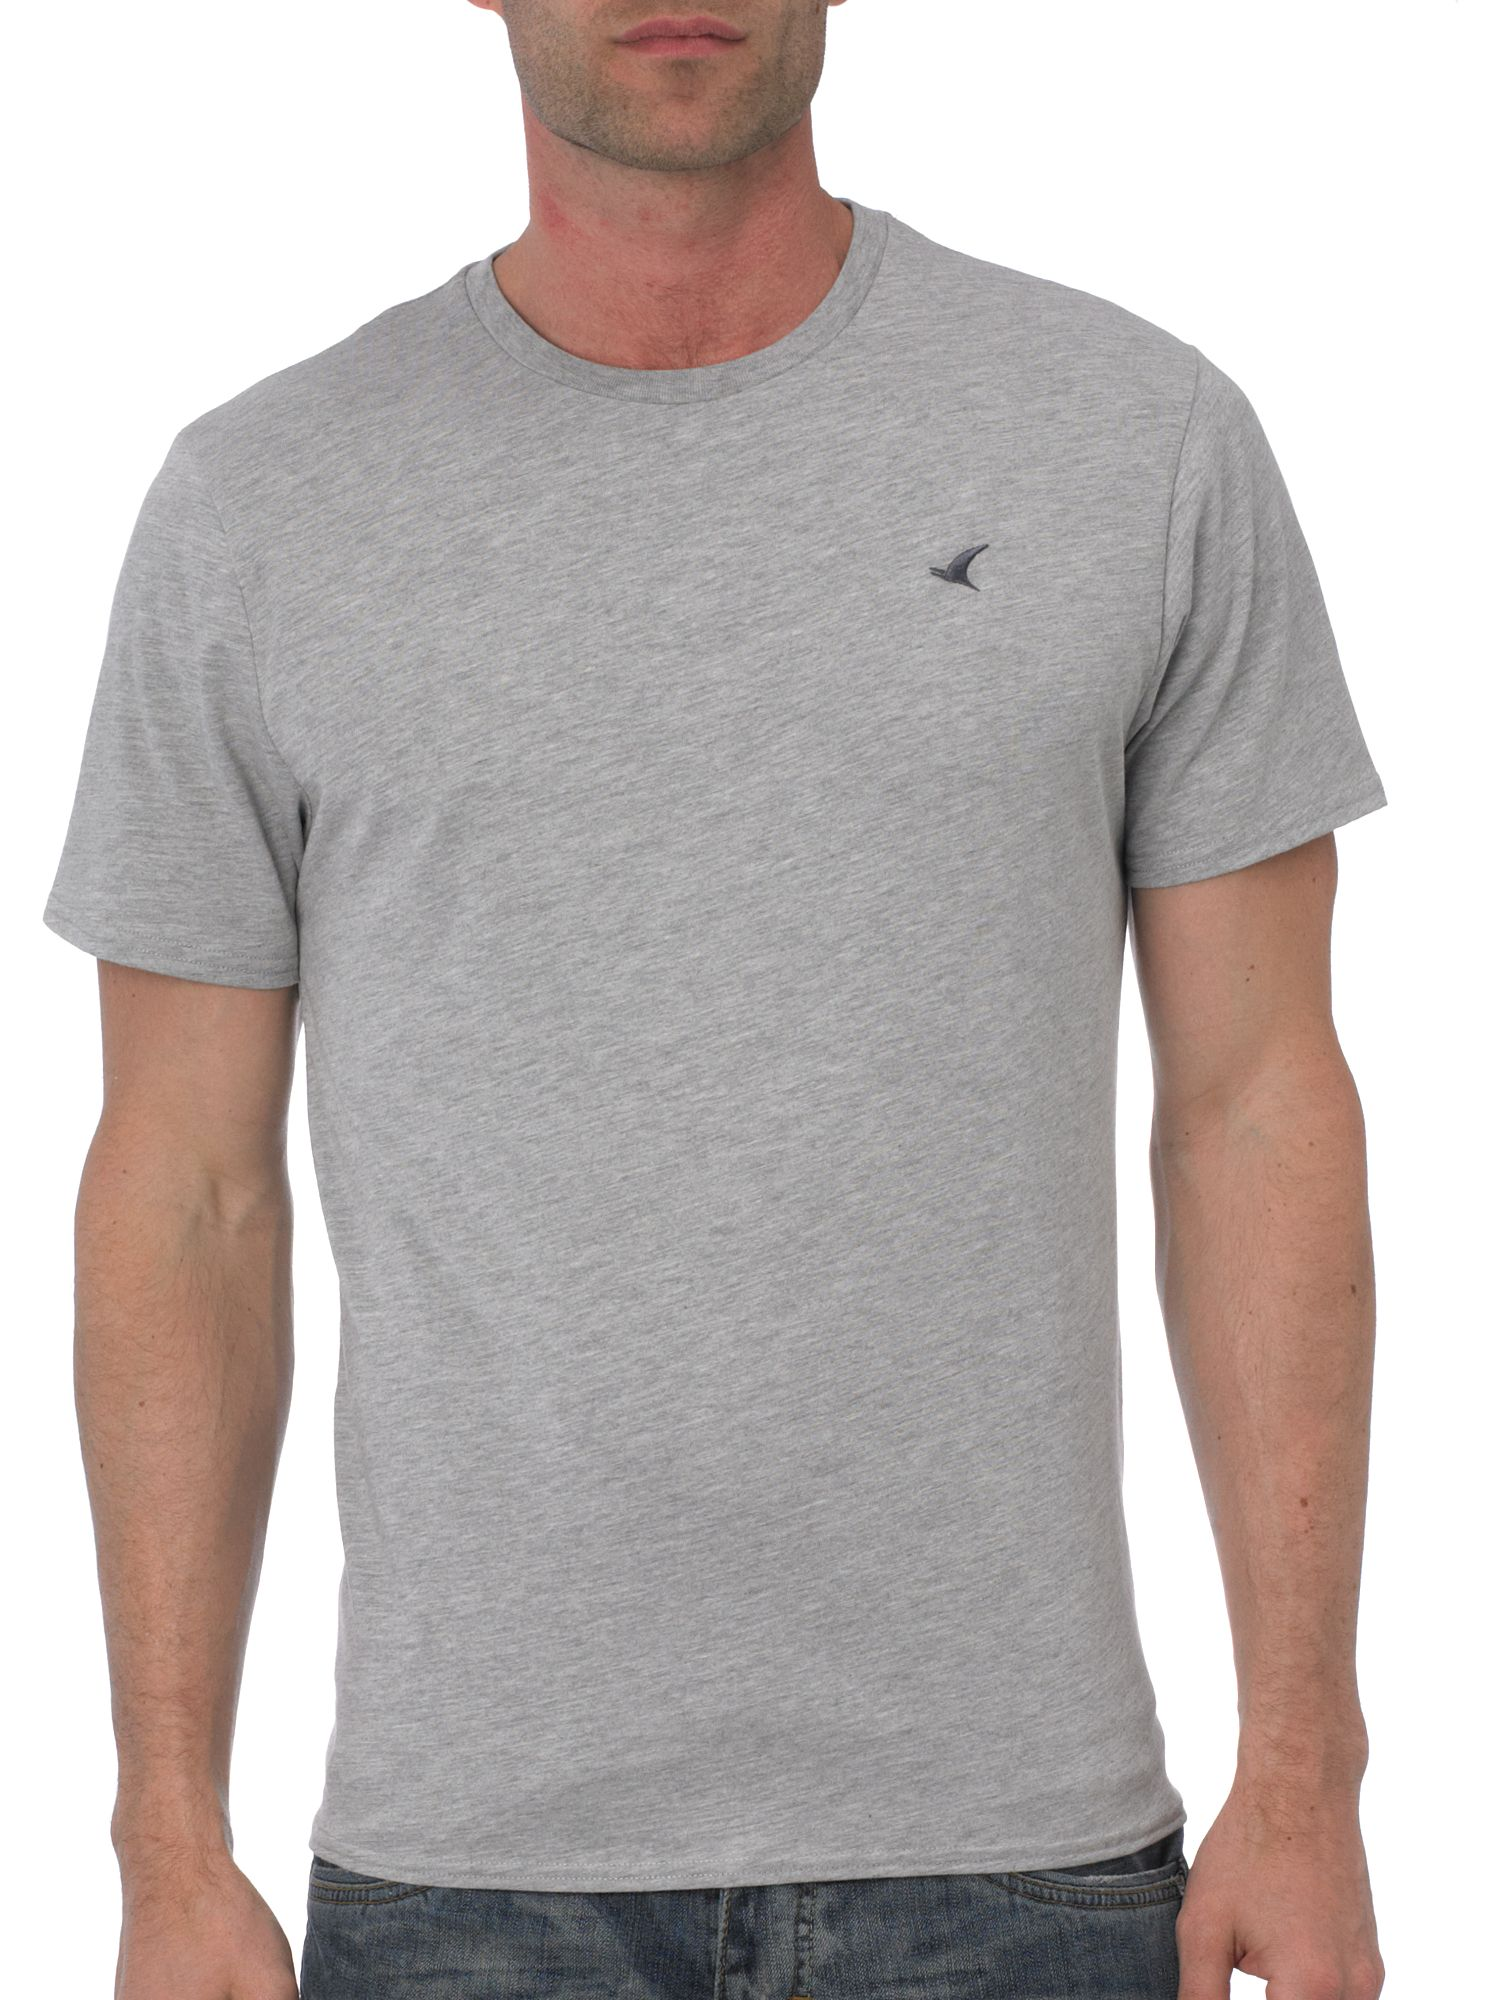 Howick Logo nightwear t-shirt Grey Marl product image